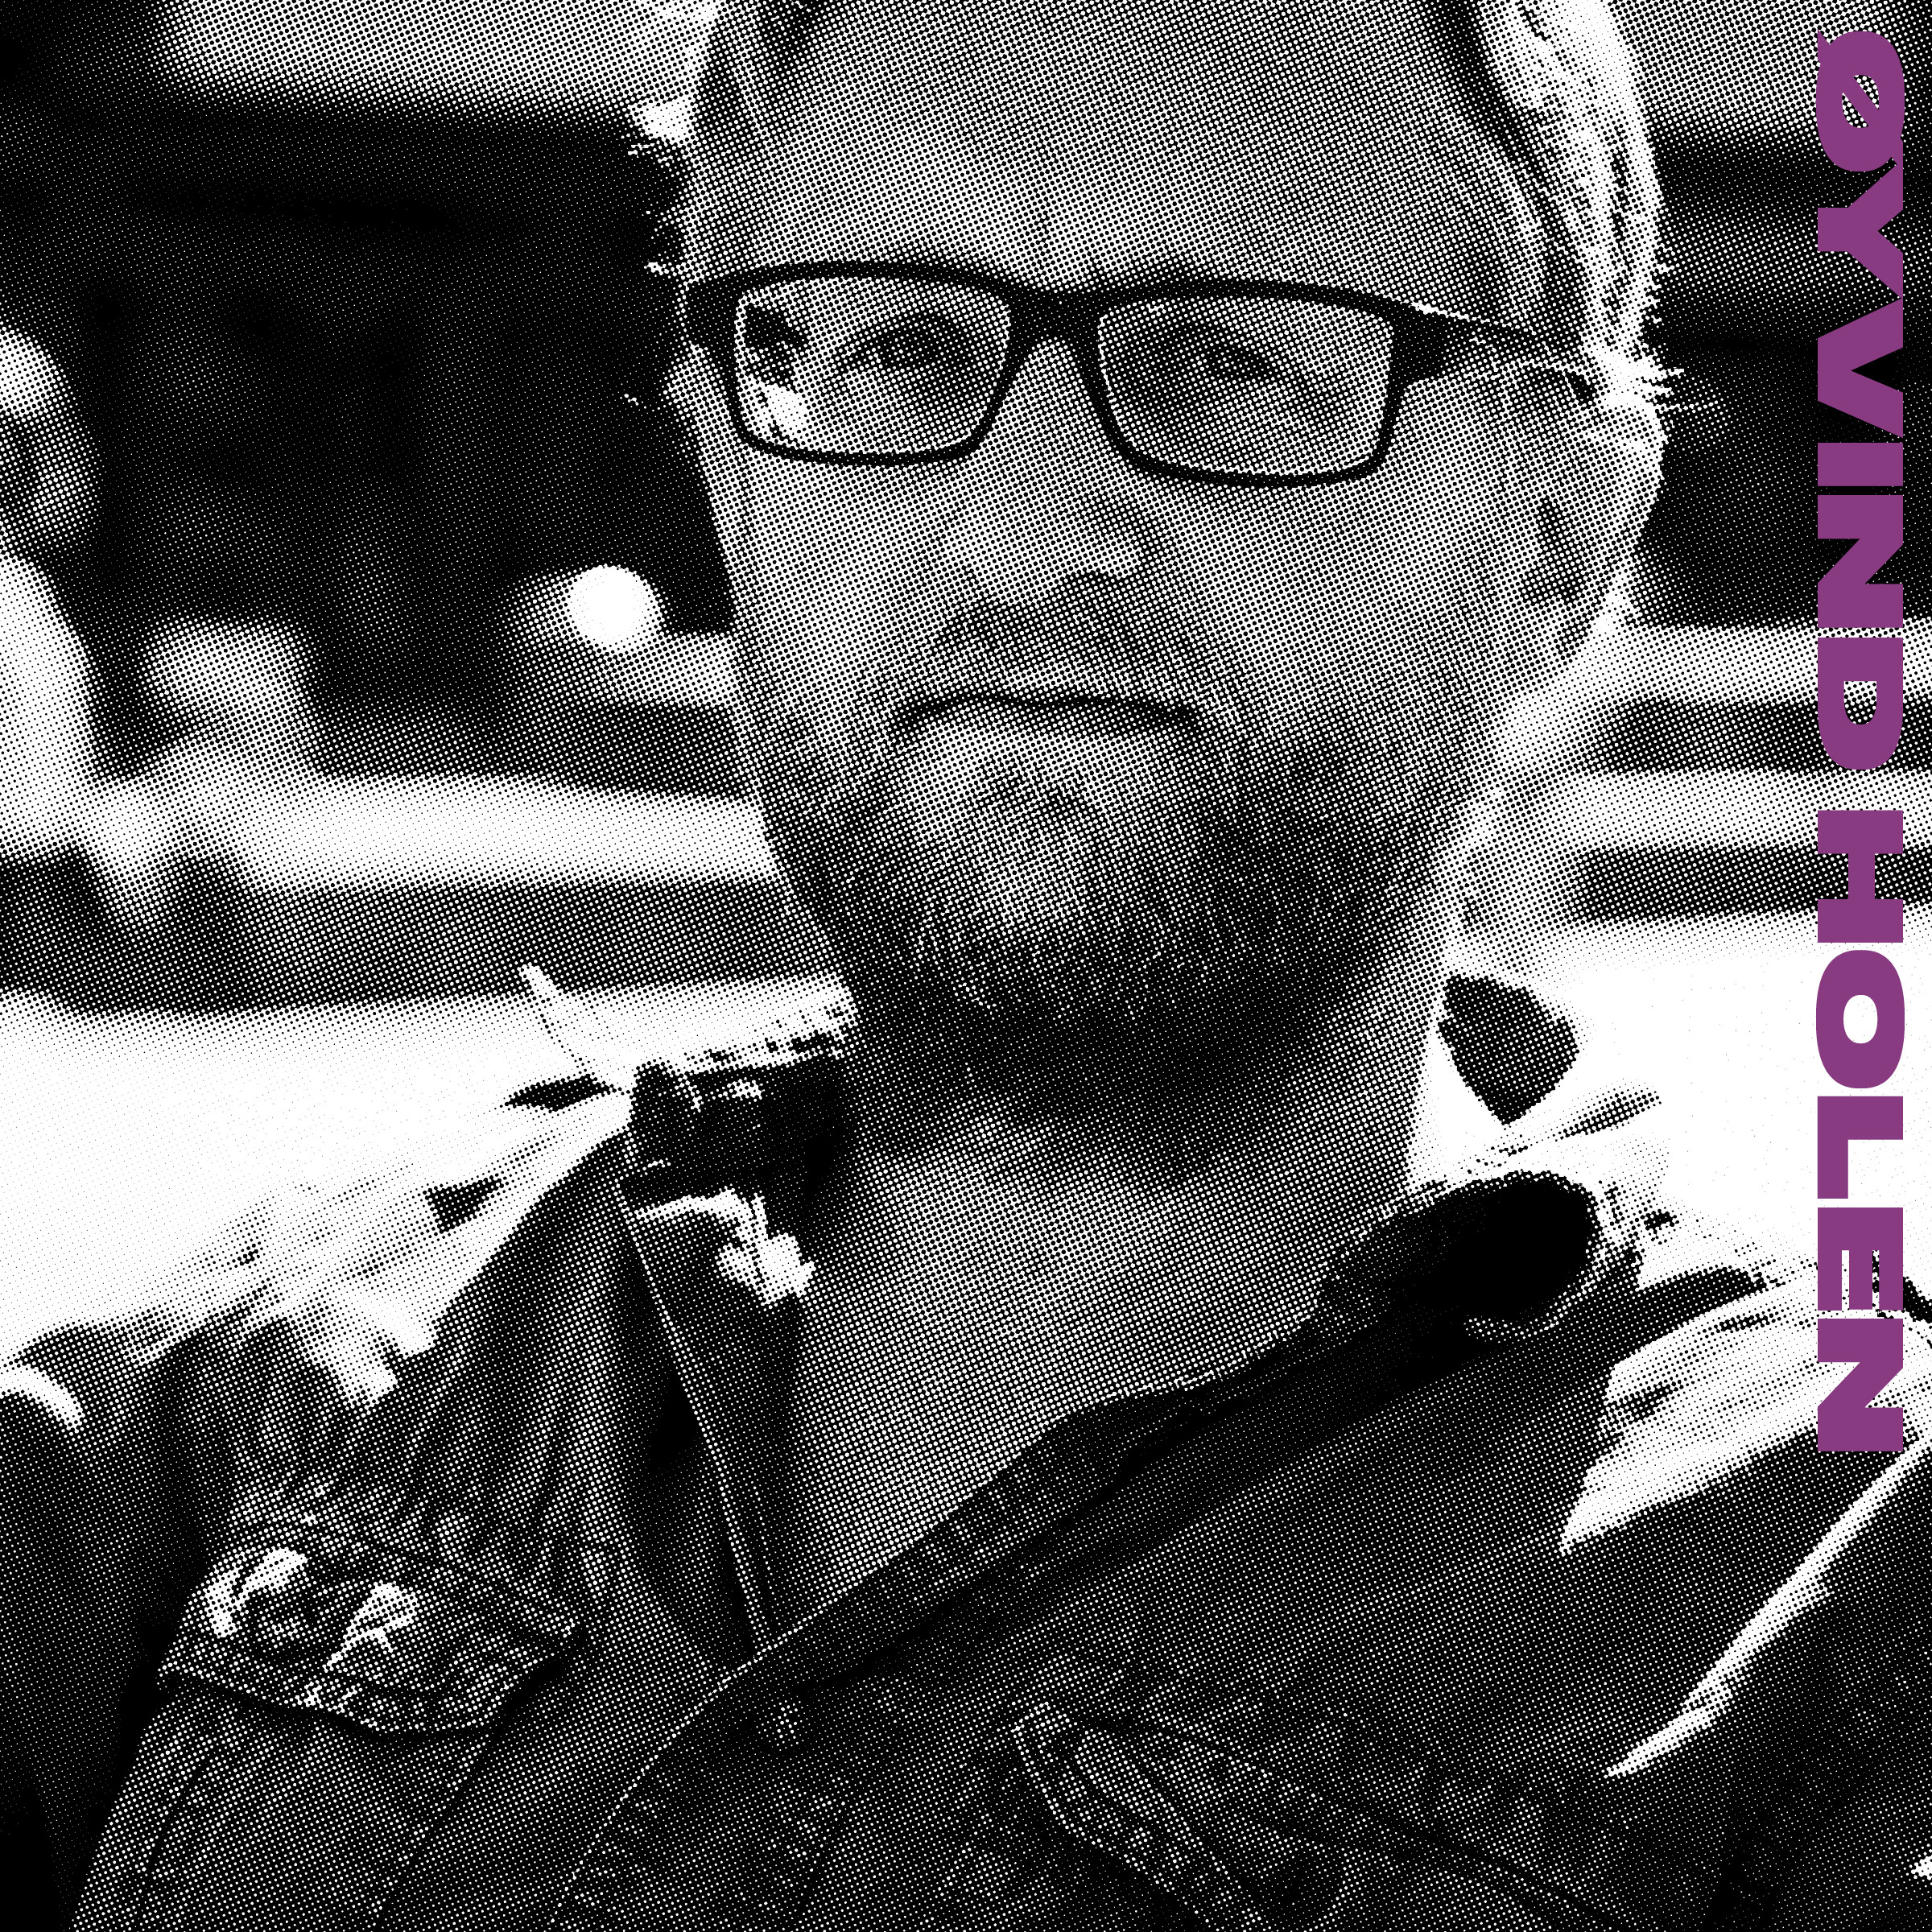 Øyvind Holen - Øyvind Holen (b. 1973) is from Lindeberg in Oslo. Since 2007 he has worked in Dagens Næringsliv's Friday supplement, D2. In addition, he has written several non-fiction books and comics. He debuted with